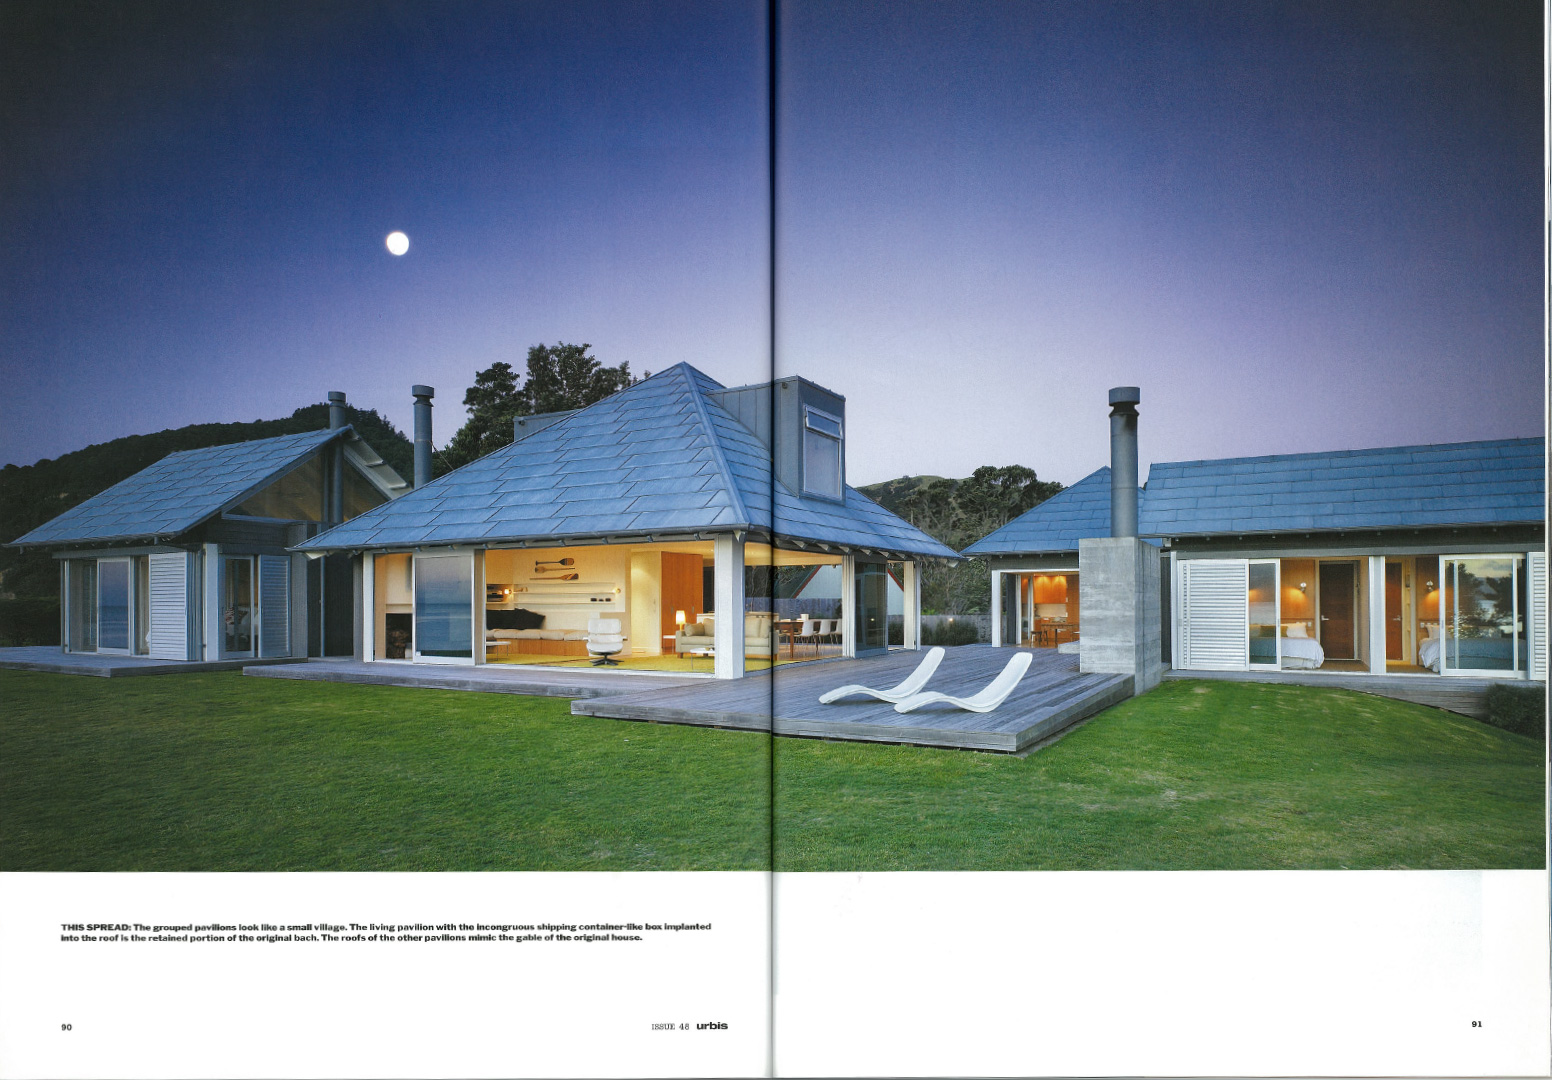 house design in magazine